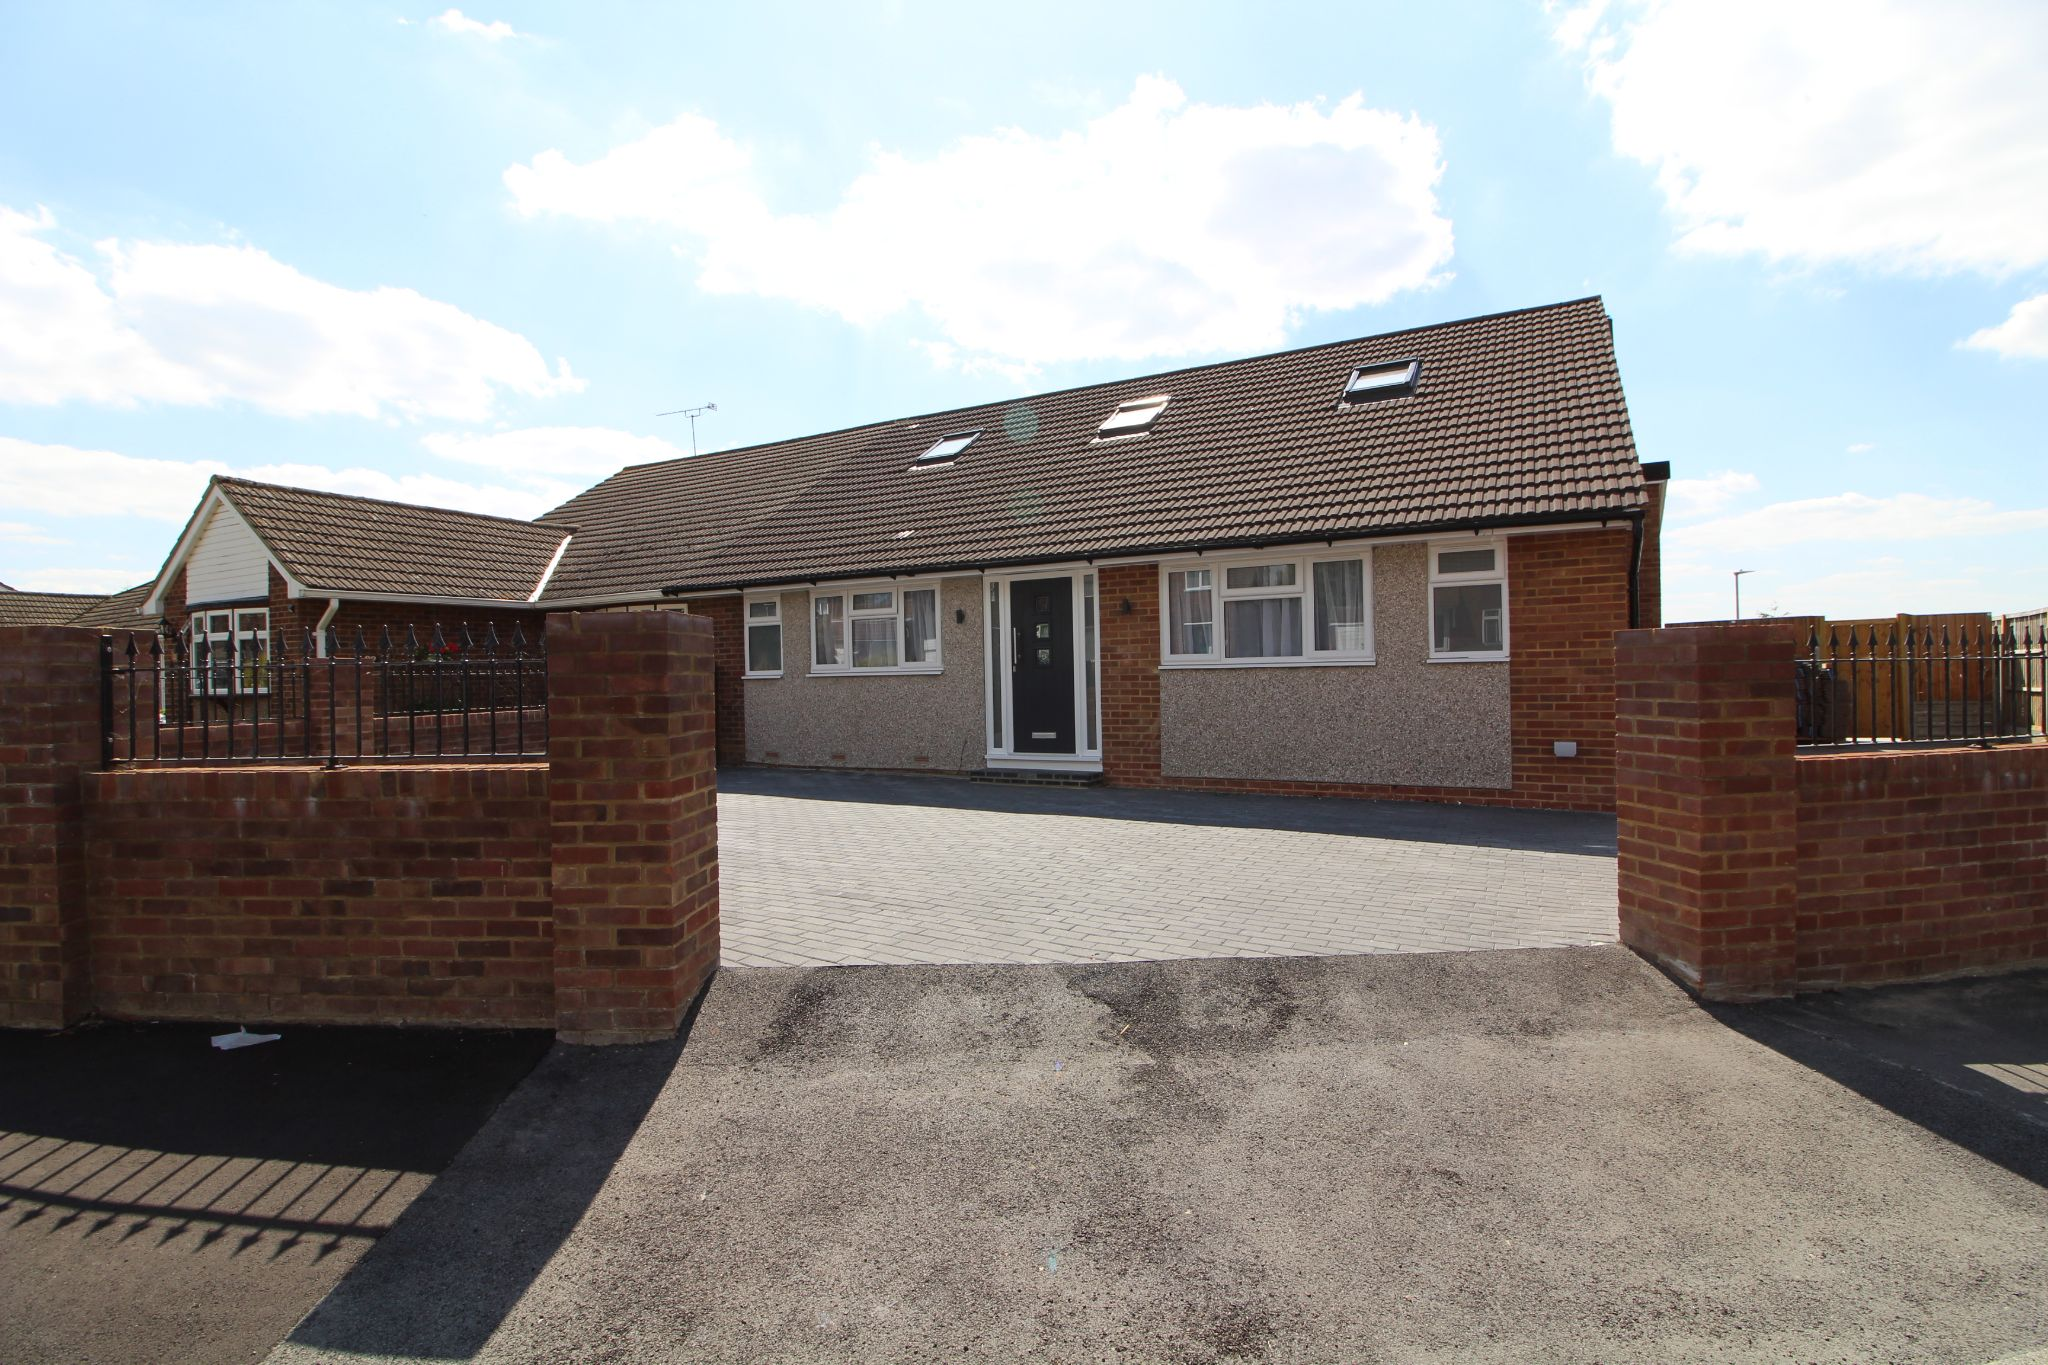 4 bedroom semi-detached bungalow For Sale in Goffs Oak - Property photograph